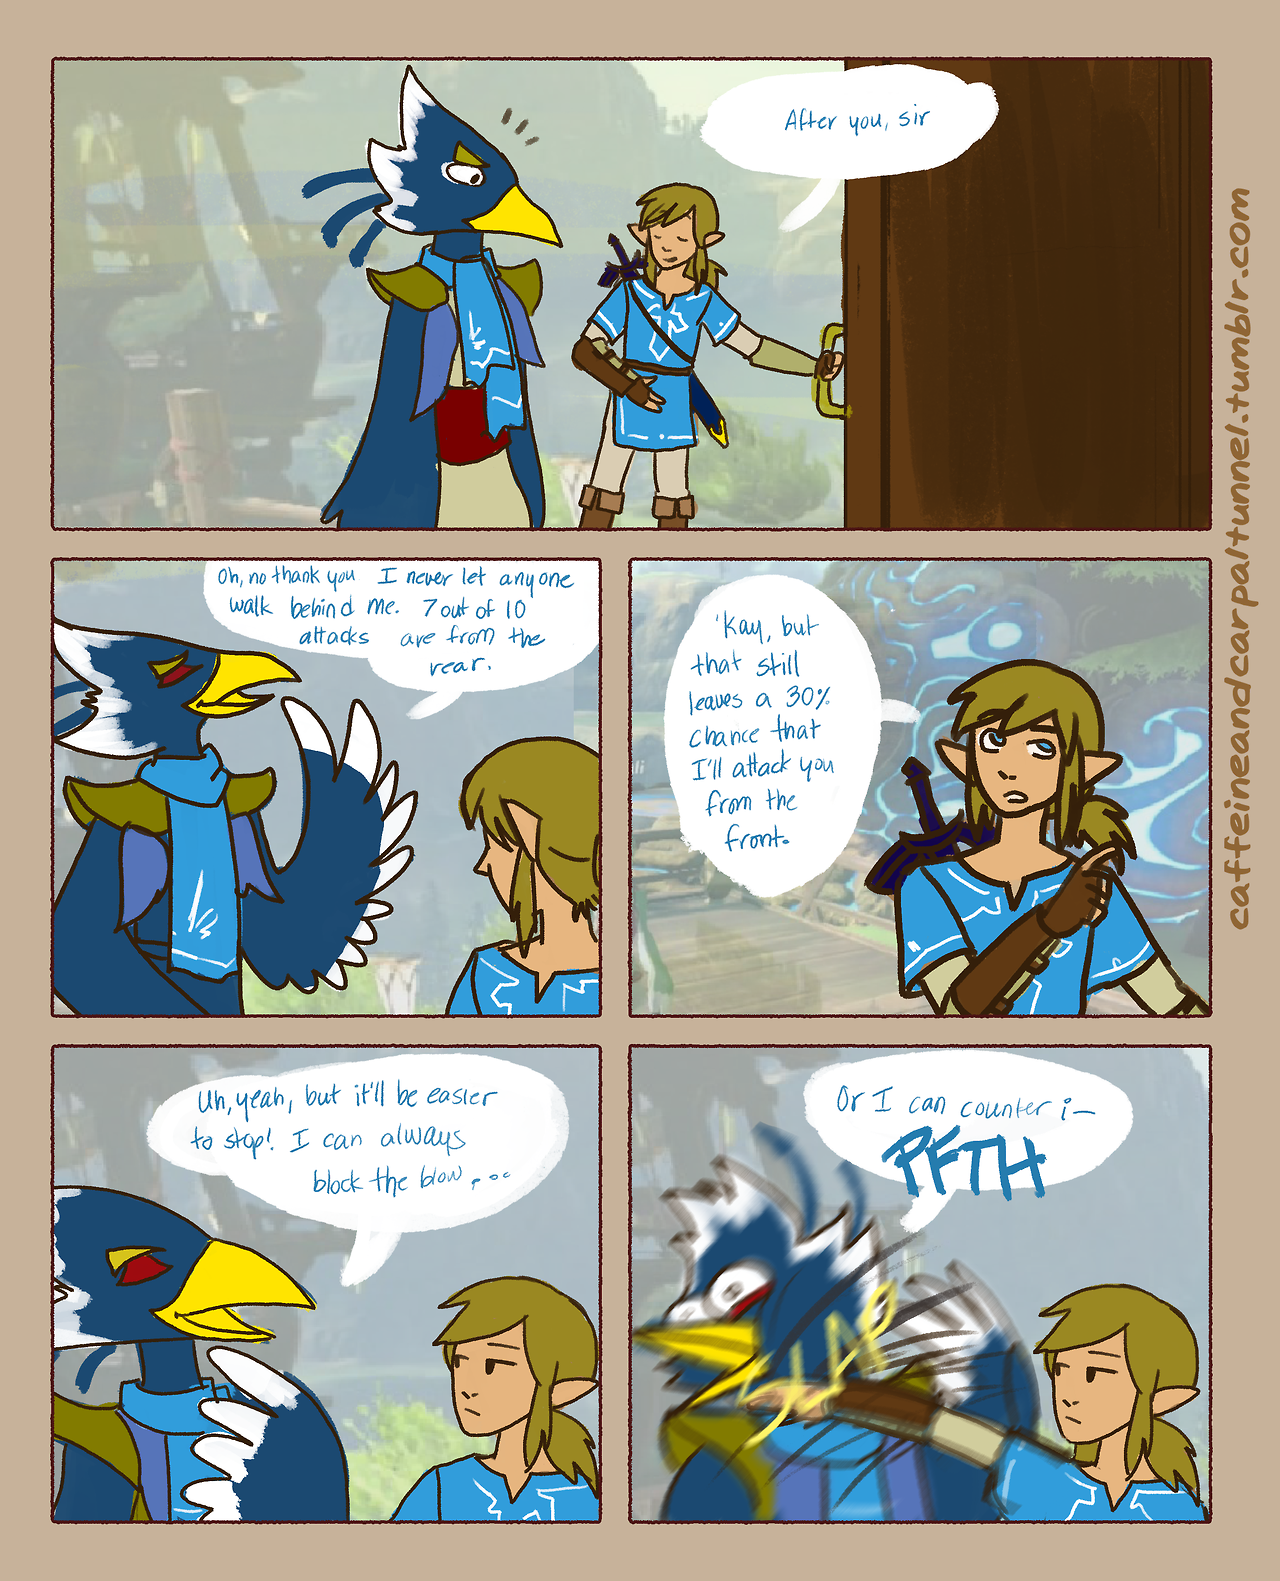 Zelda Quotes Revali And Link  Legend Of Zelda Breath Of The Wild  Fan Comics